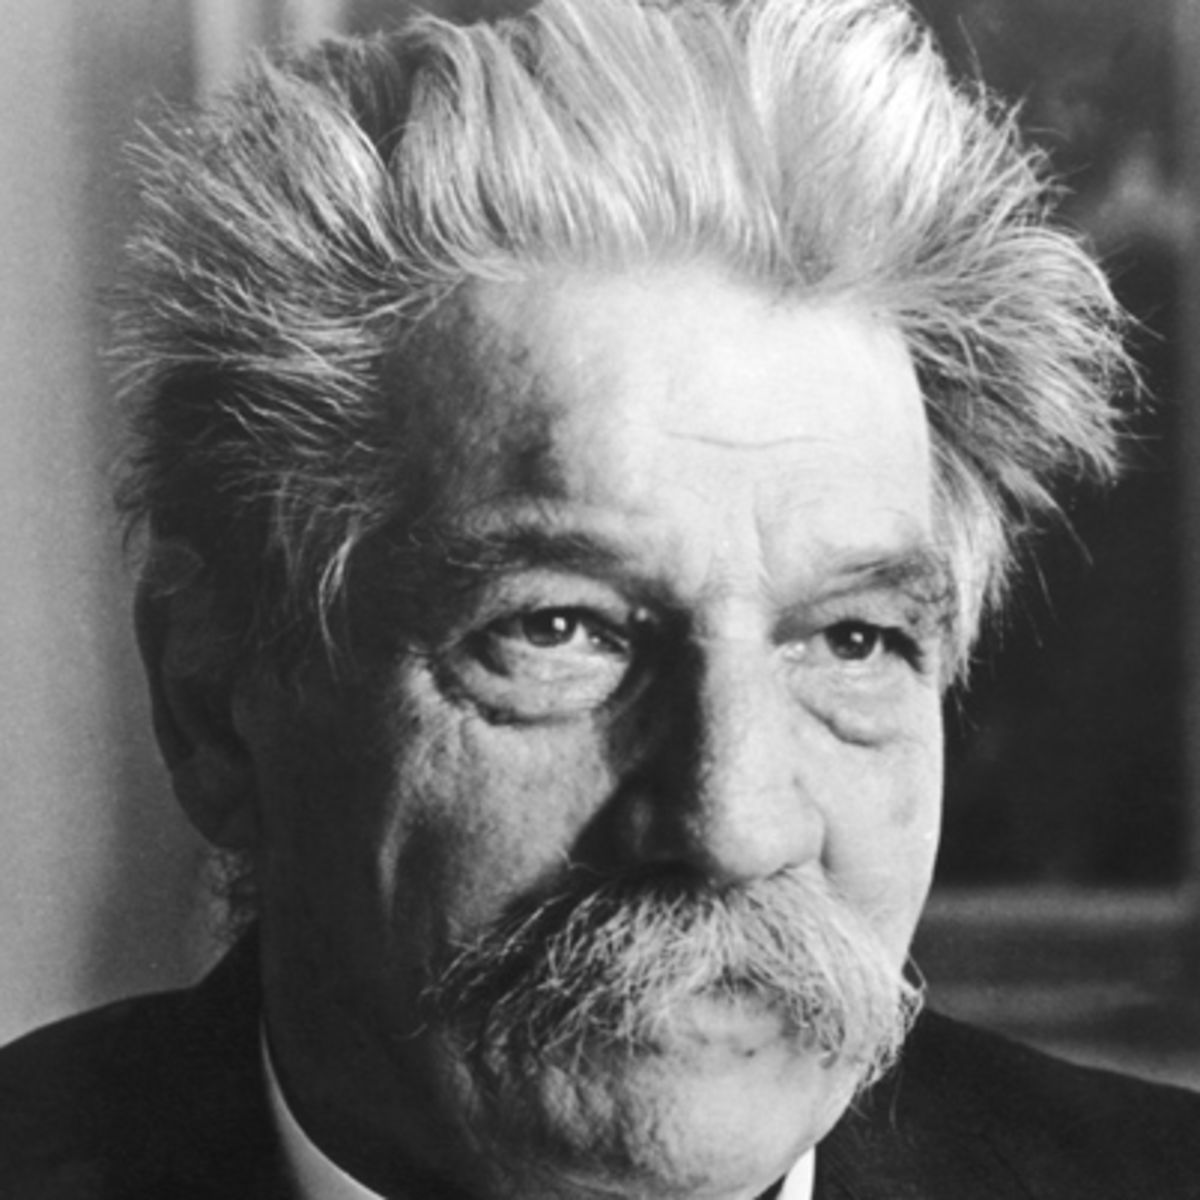 Biography.com profiles Albert Schweitzer, theologian, philosopher, organist, and mission doctor in equatorial Africa, whose goal was the Brotherhood of Nations.